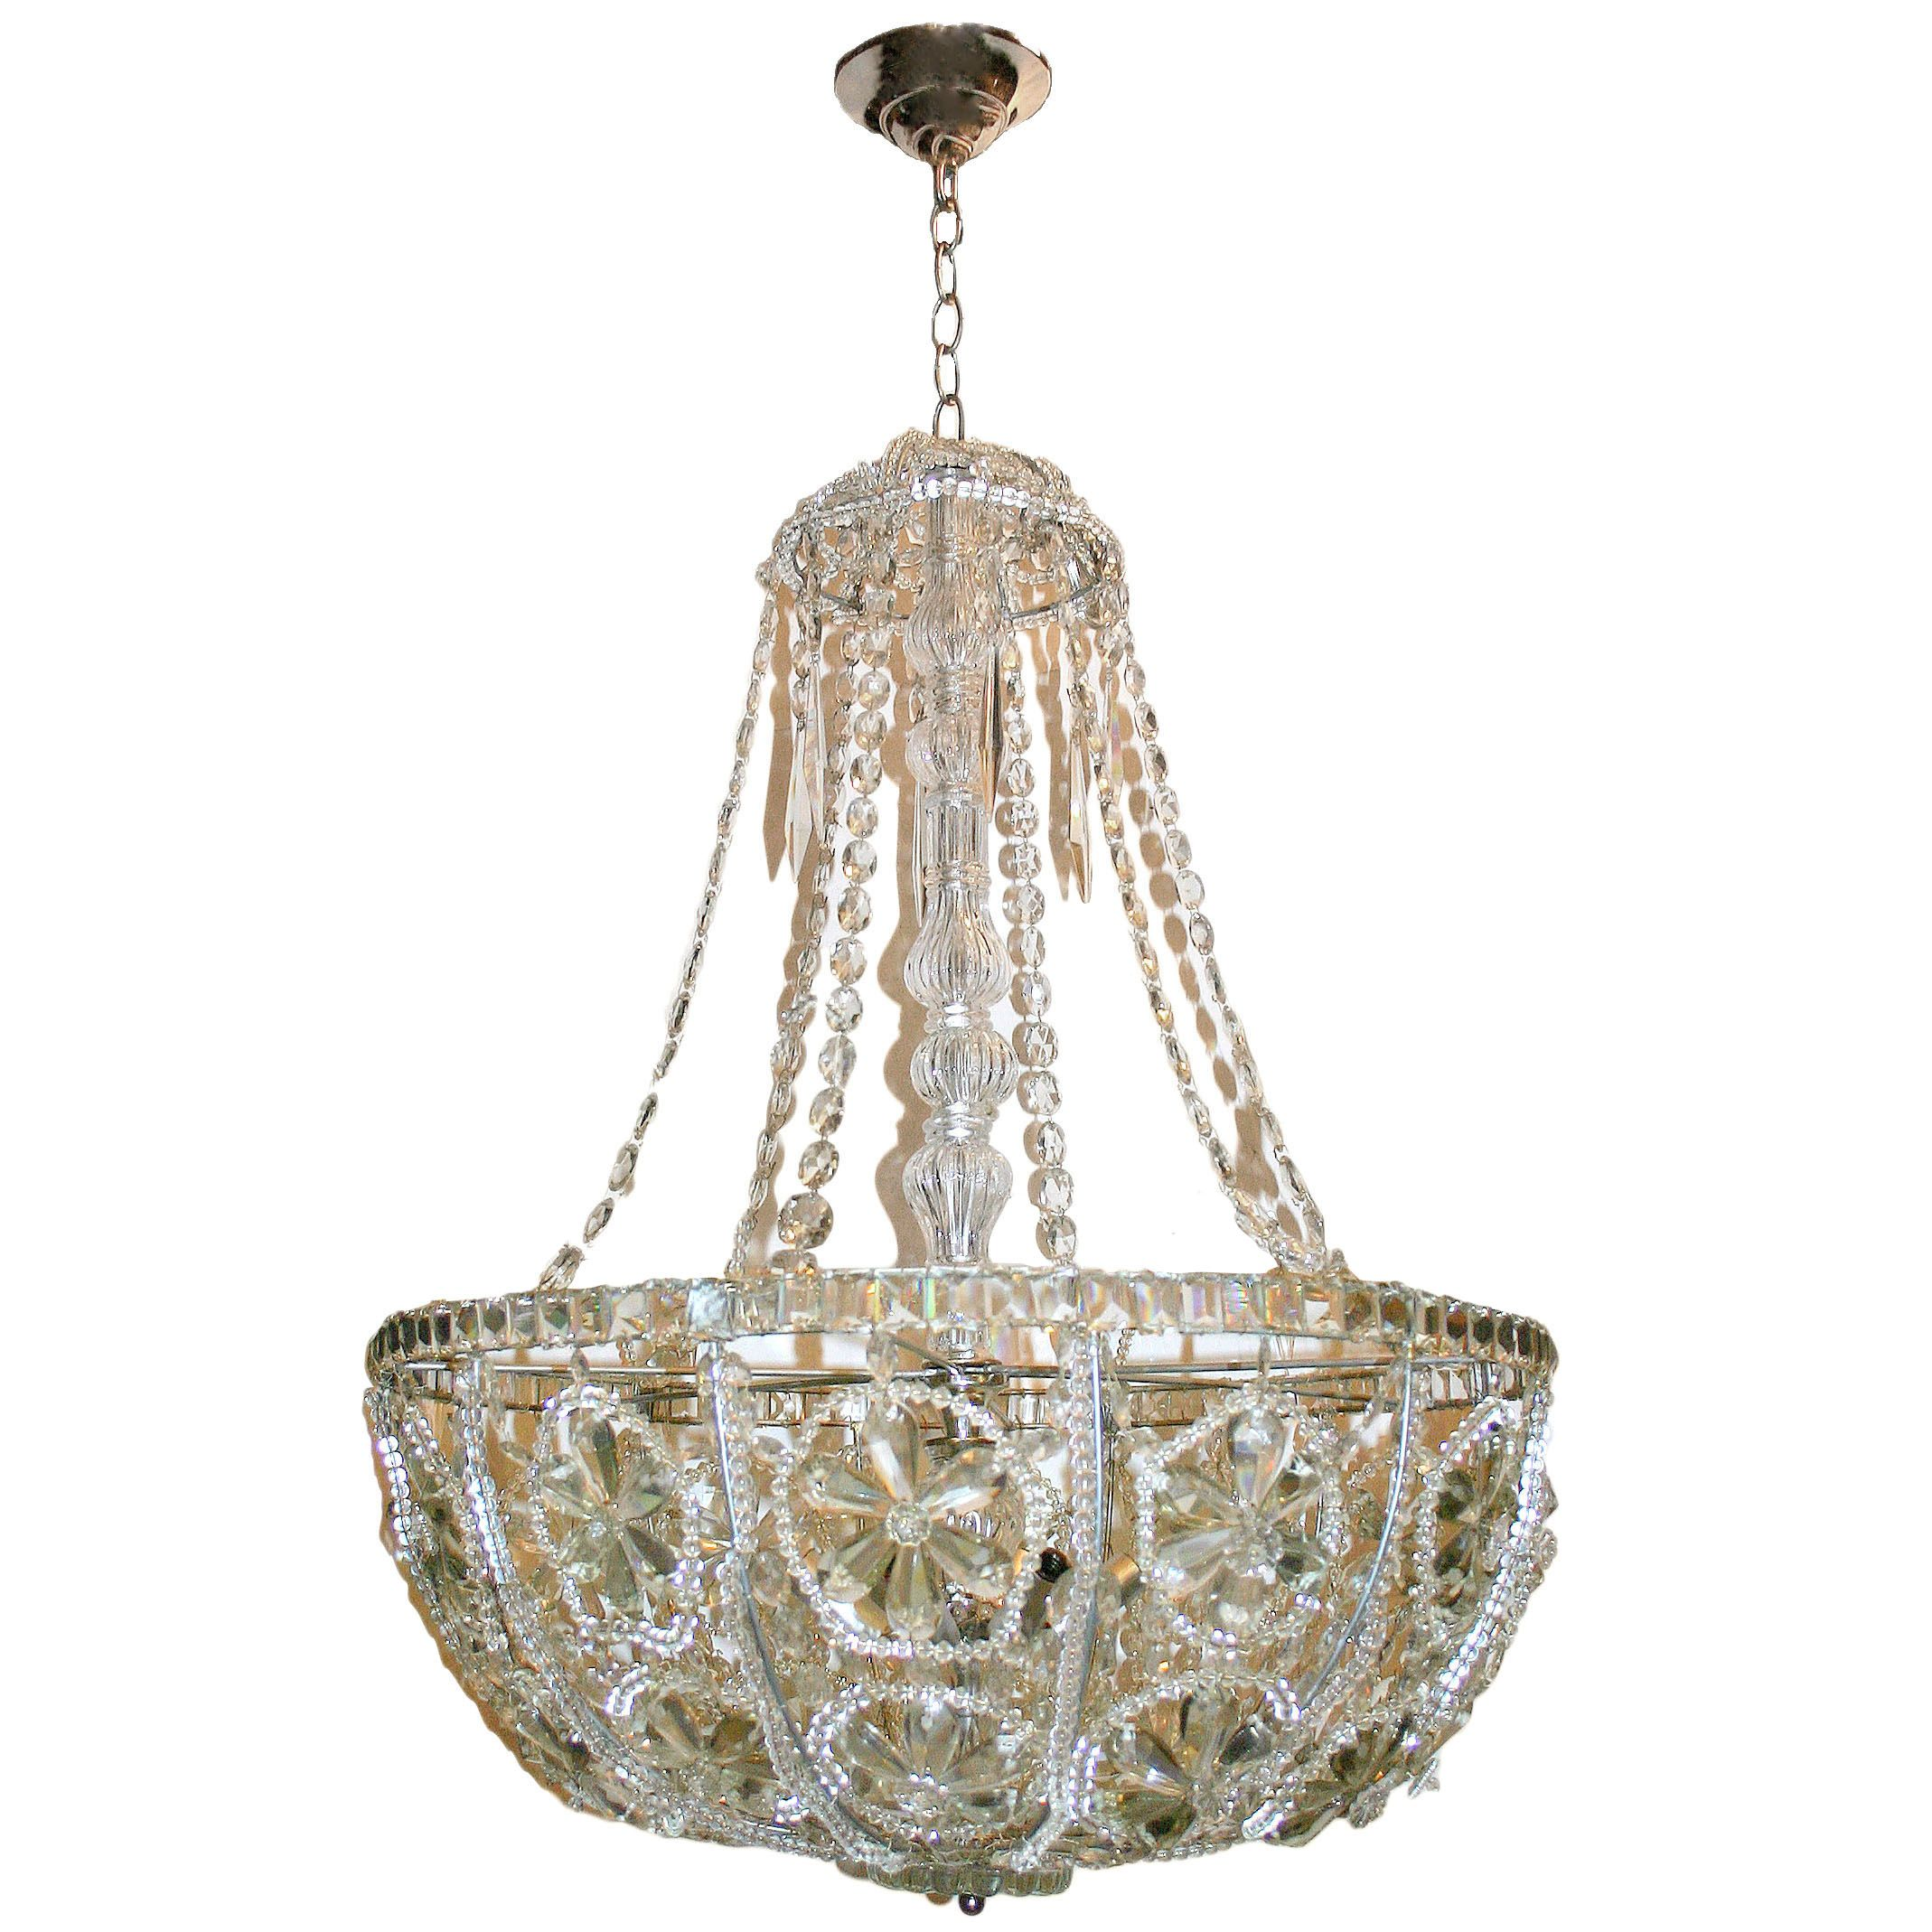 A Circa 1940 S French Beaded Crystals Light Fixture Chandelier With Basket Shaped Crystal Flowers And Beads 12 Interior Lights